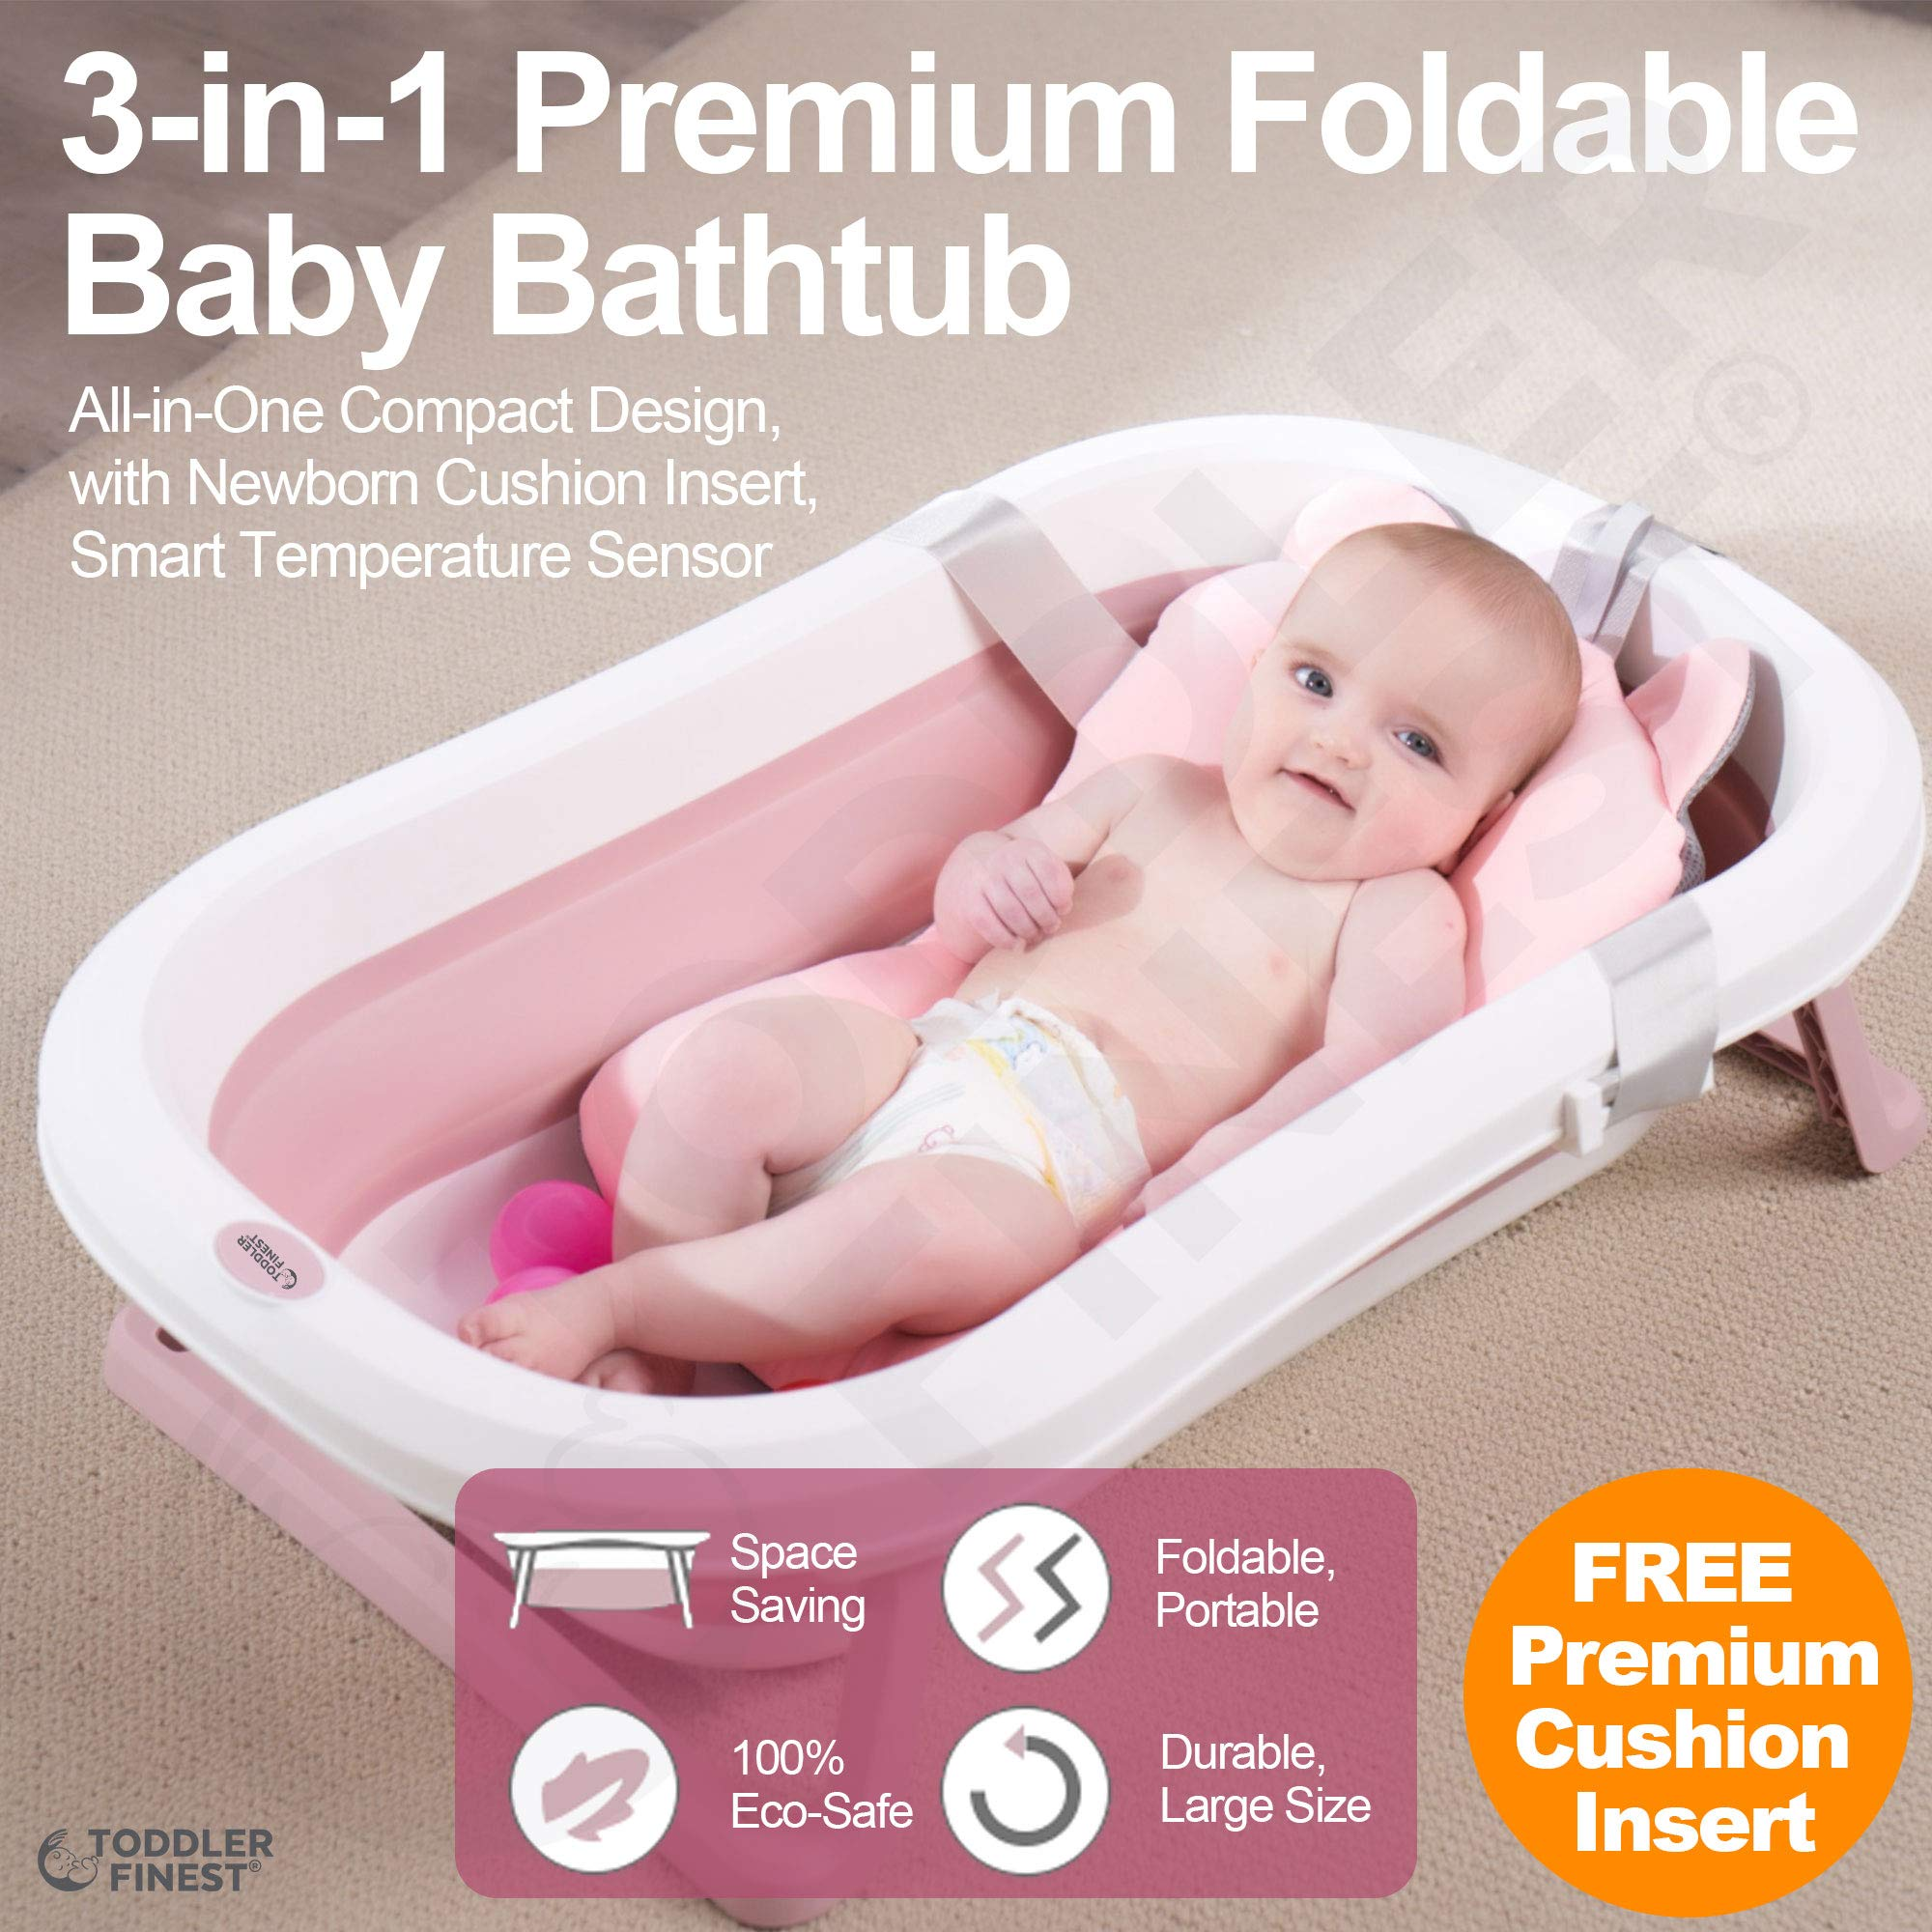 3-in-1 Portable Collapsible Infant to Toddler Space Saver Foldable Bath tub - Anti Slip Skid Proof - with Cushion Insert & Water Rinser for Bathing Newborns (Pink) by ToddlerFinest